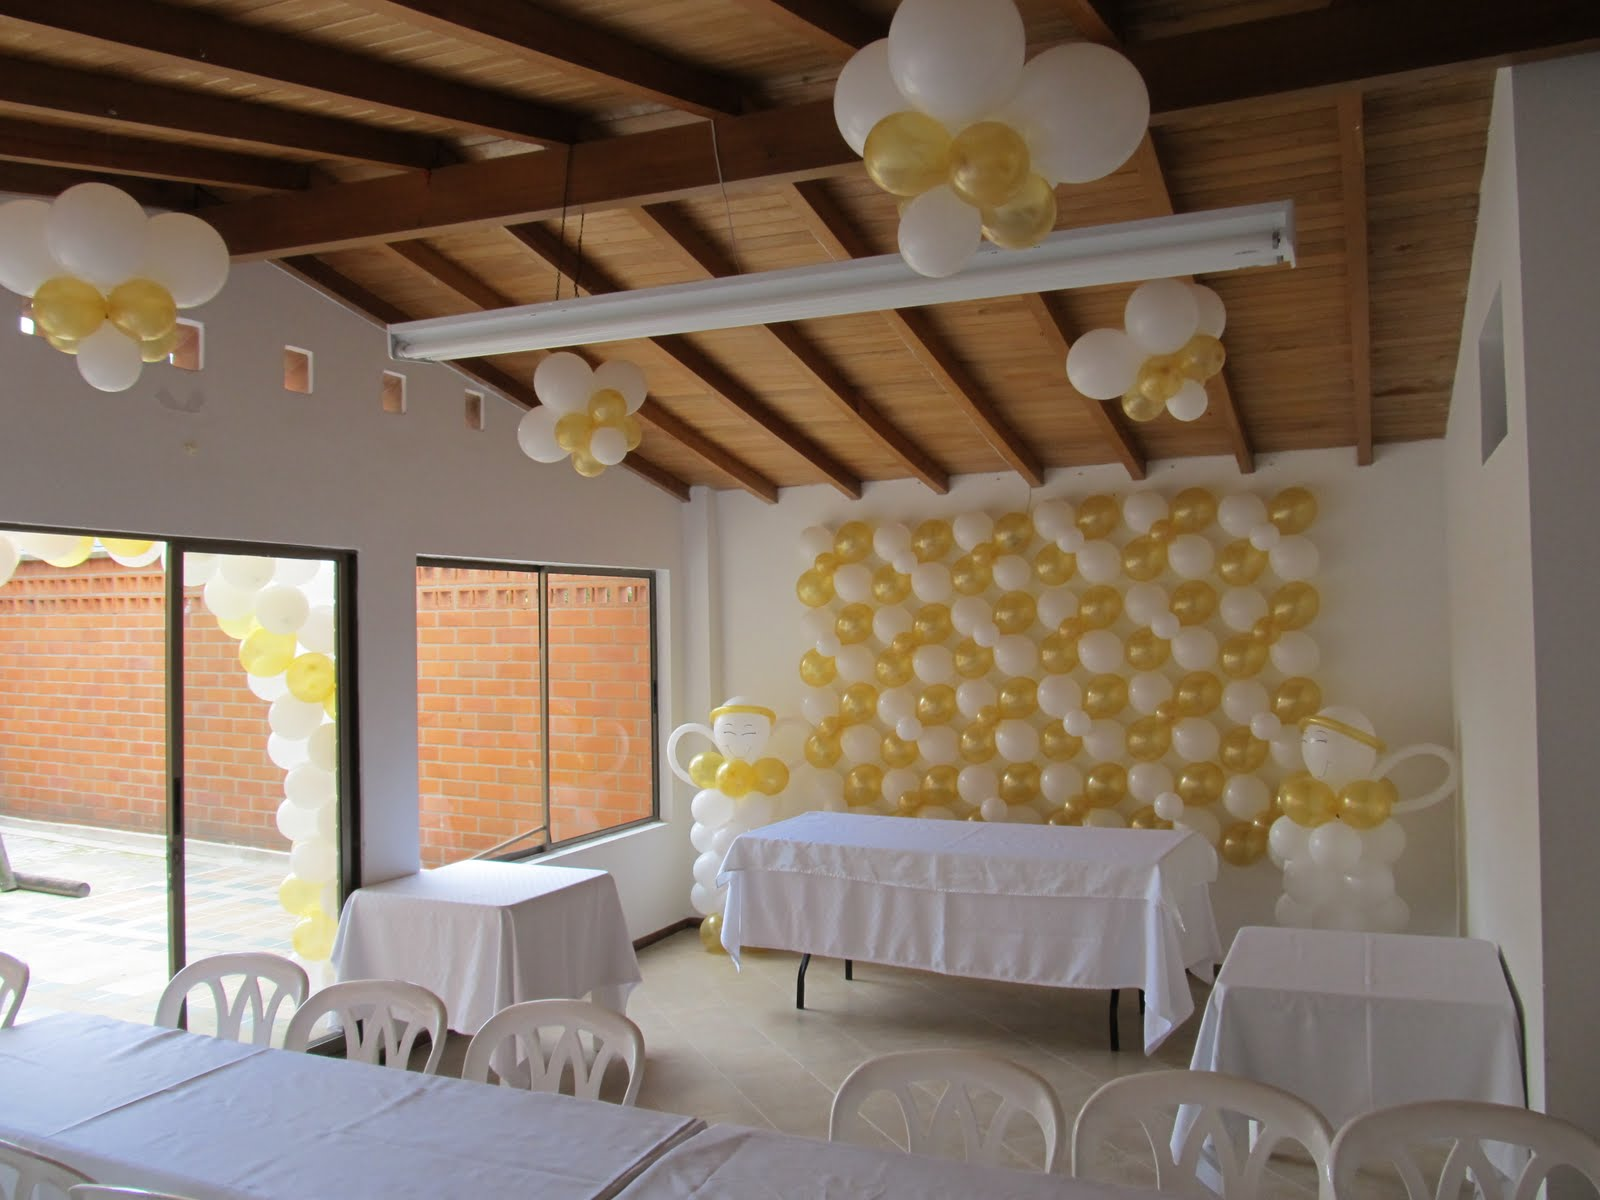 Decoracion con globos para primera comunion y for Decoracion simple con globos